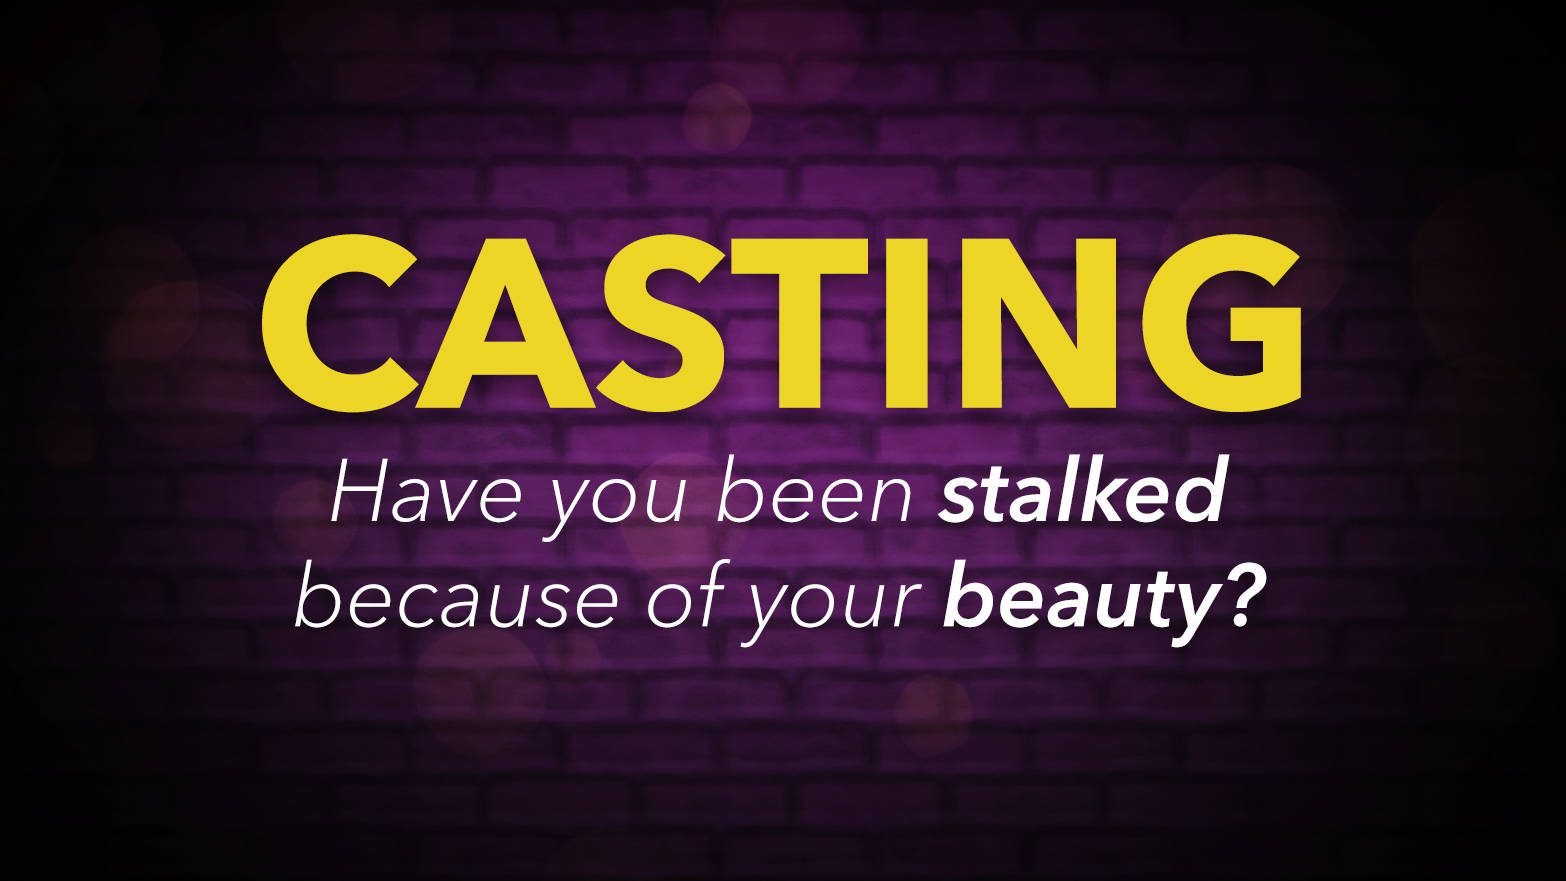 Casting: Have you been stalked because of your beauty?